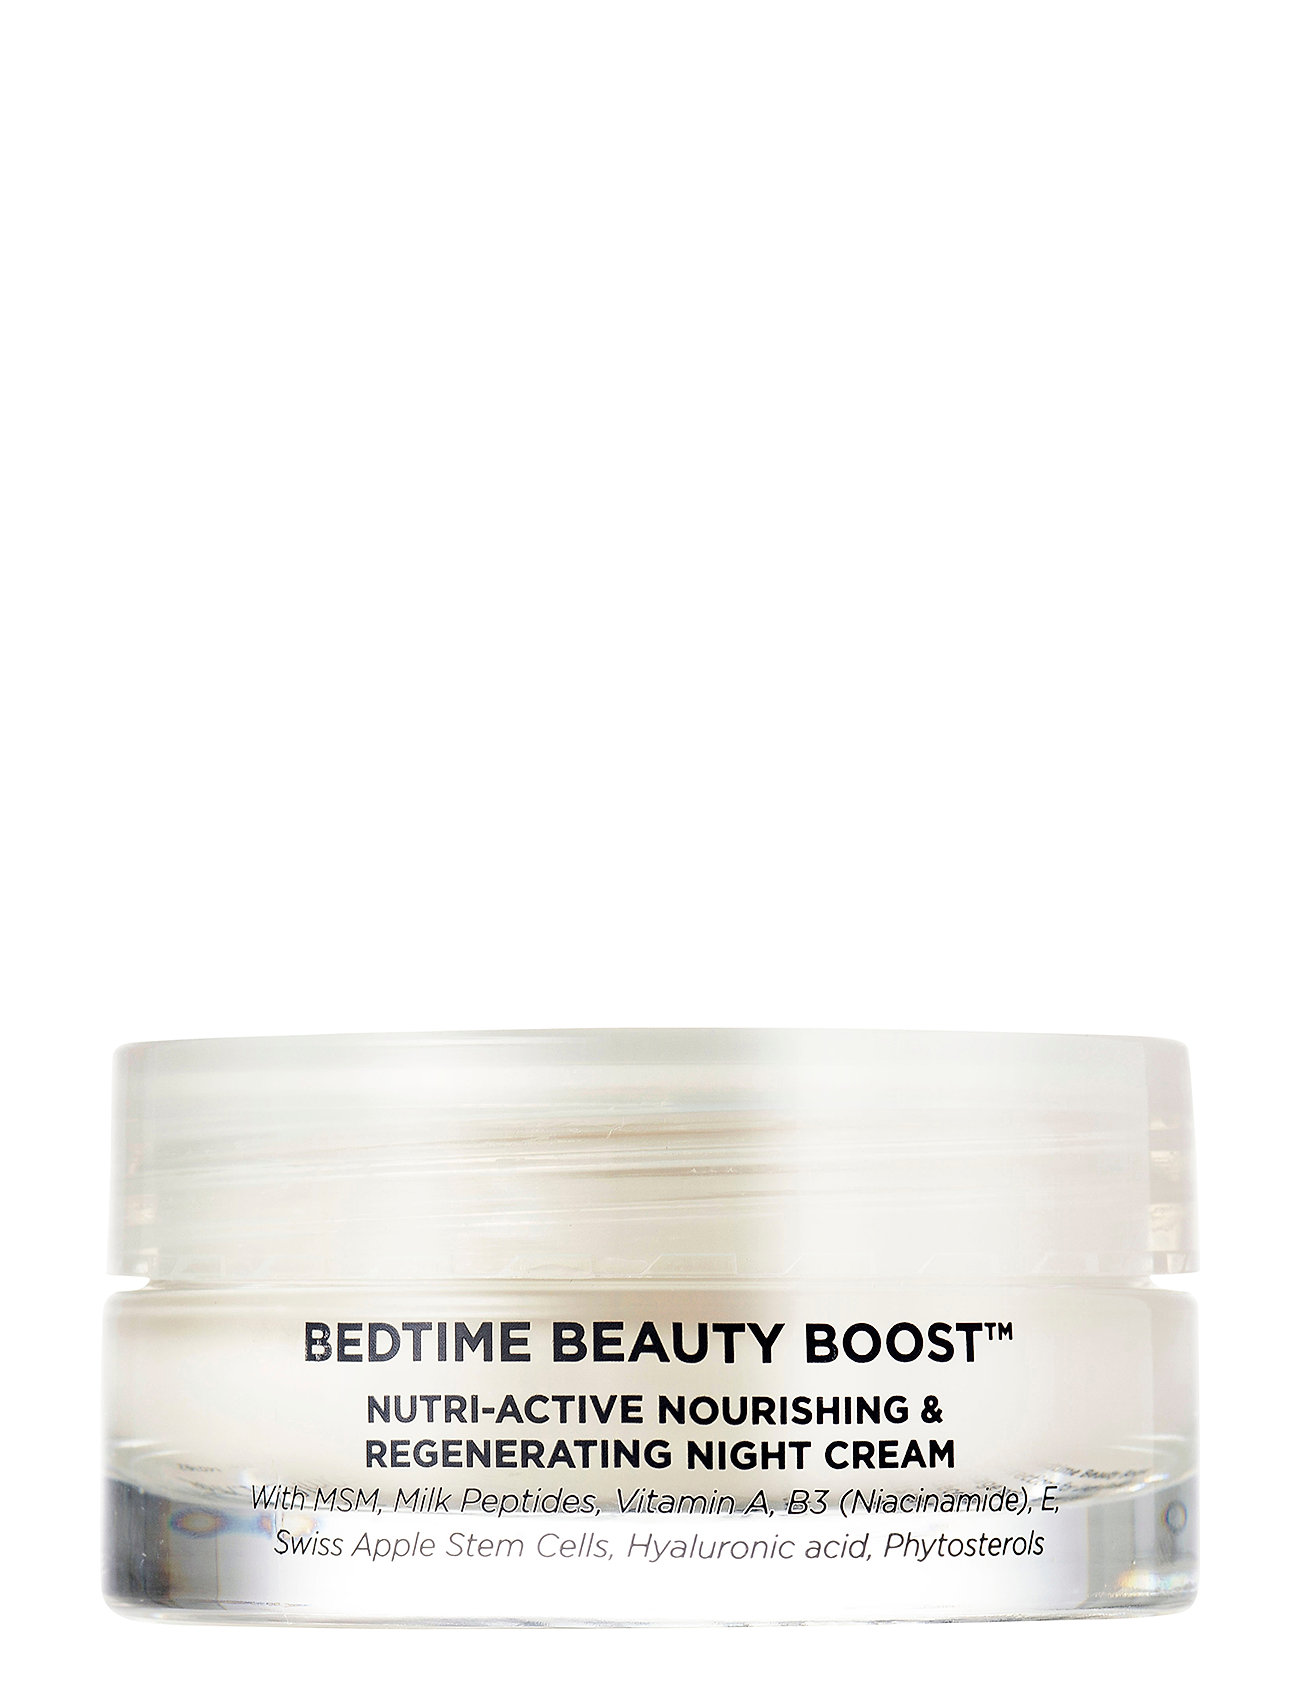 Image of Bedtime Beauty Boost Beauty WOMEN Skin Care Face Night Cream Nude OSKIA (3360324927)